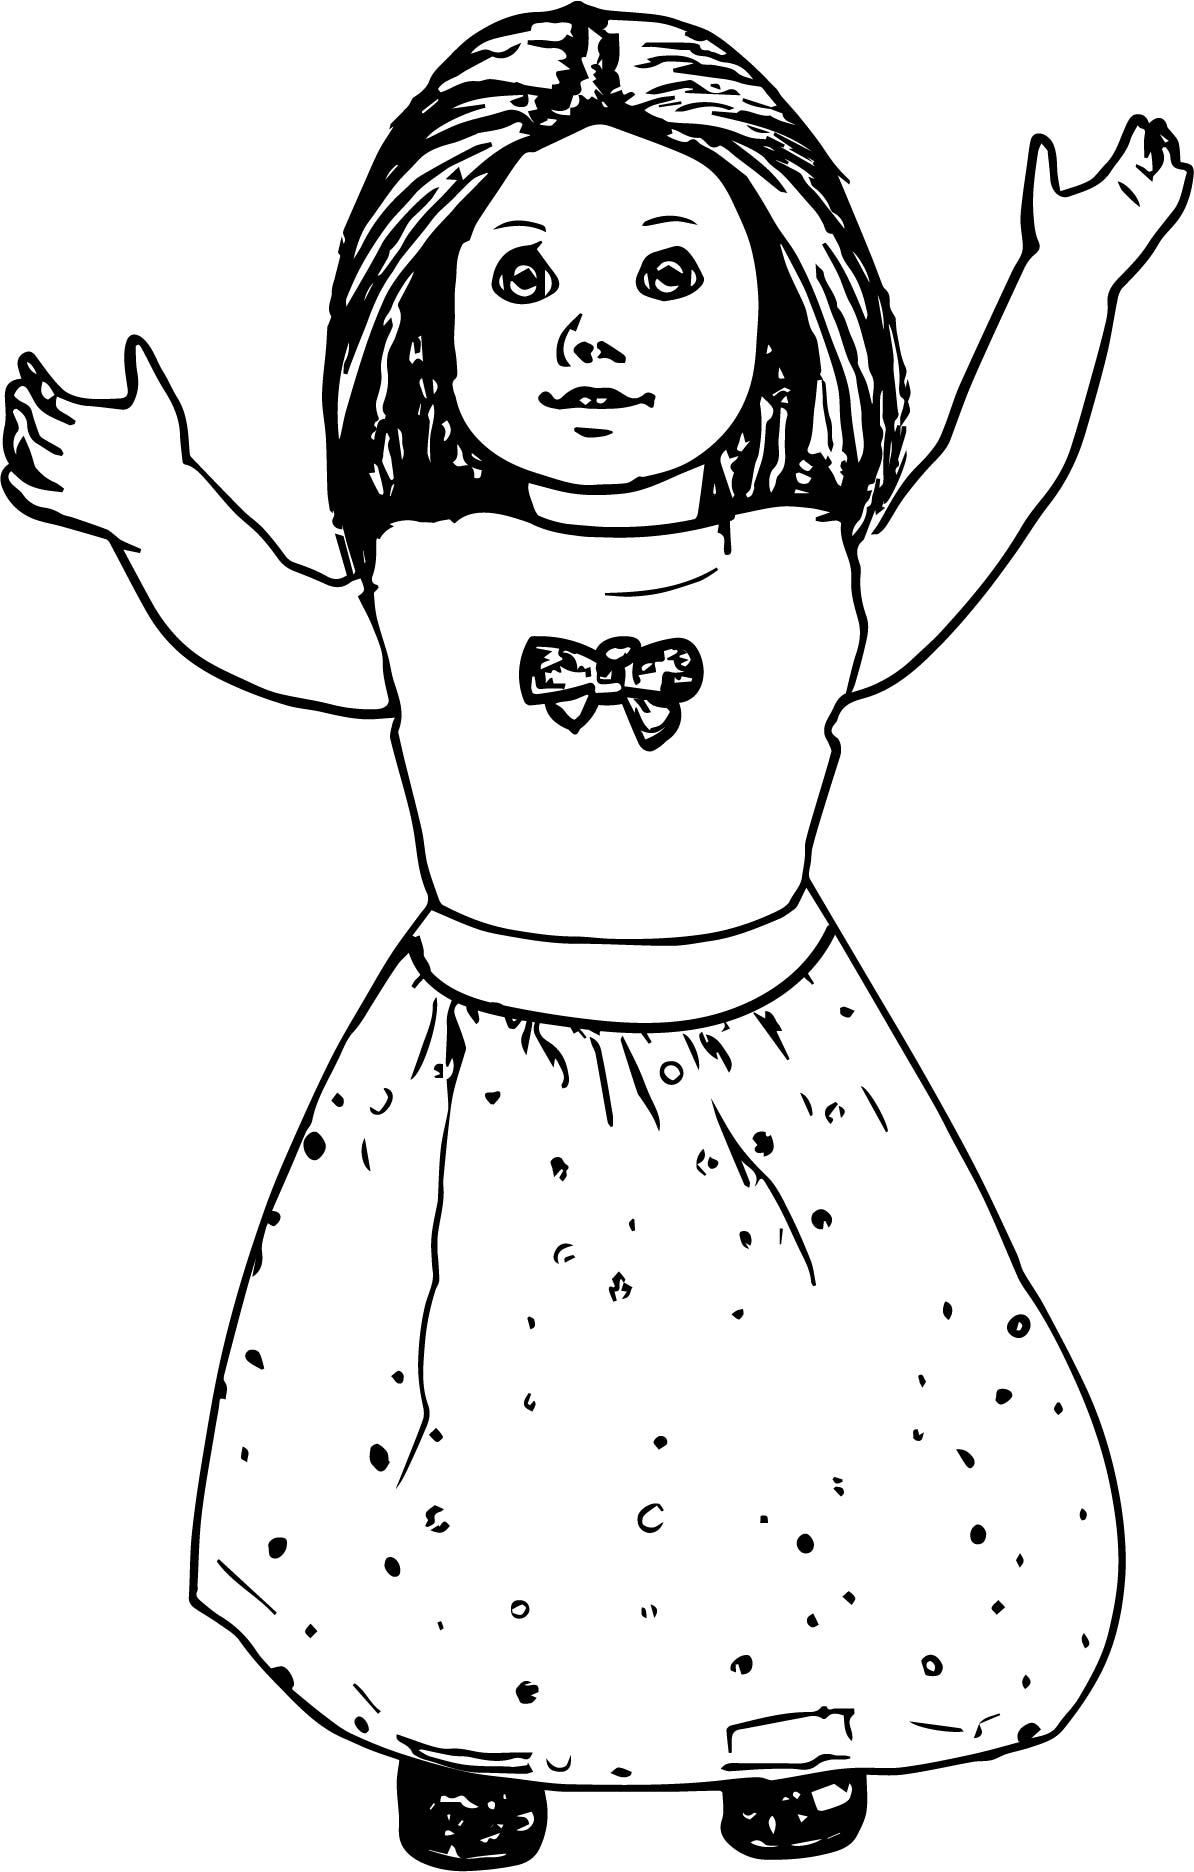 american doll coloring pages American Girl Coloring Pages   Best Coloring Pages For Kids american doll coloring pages